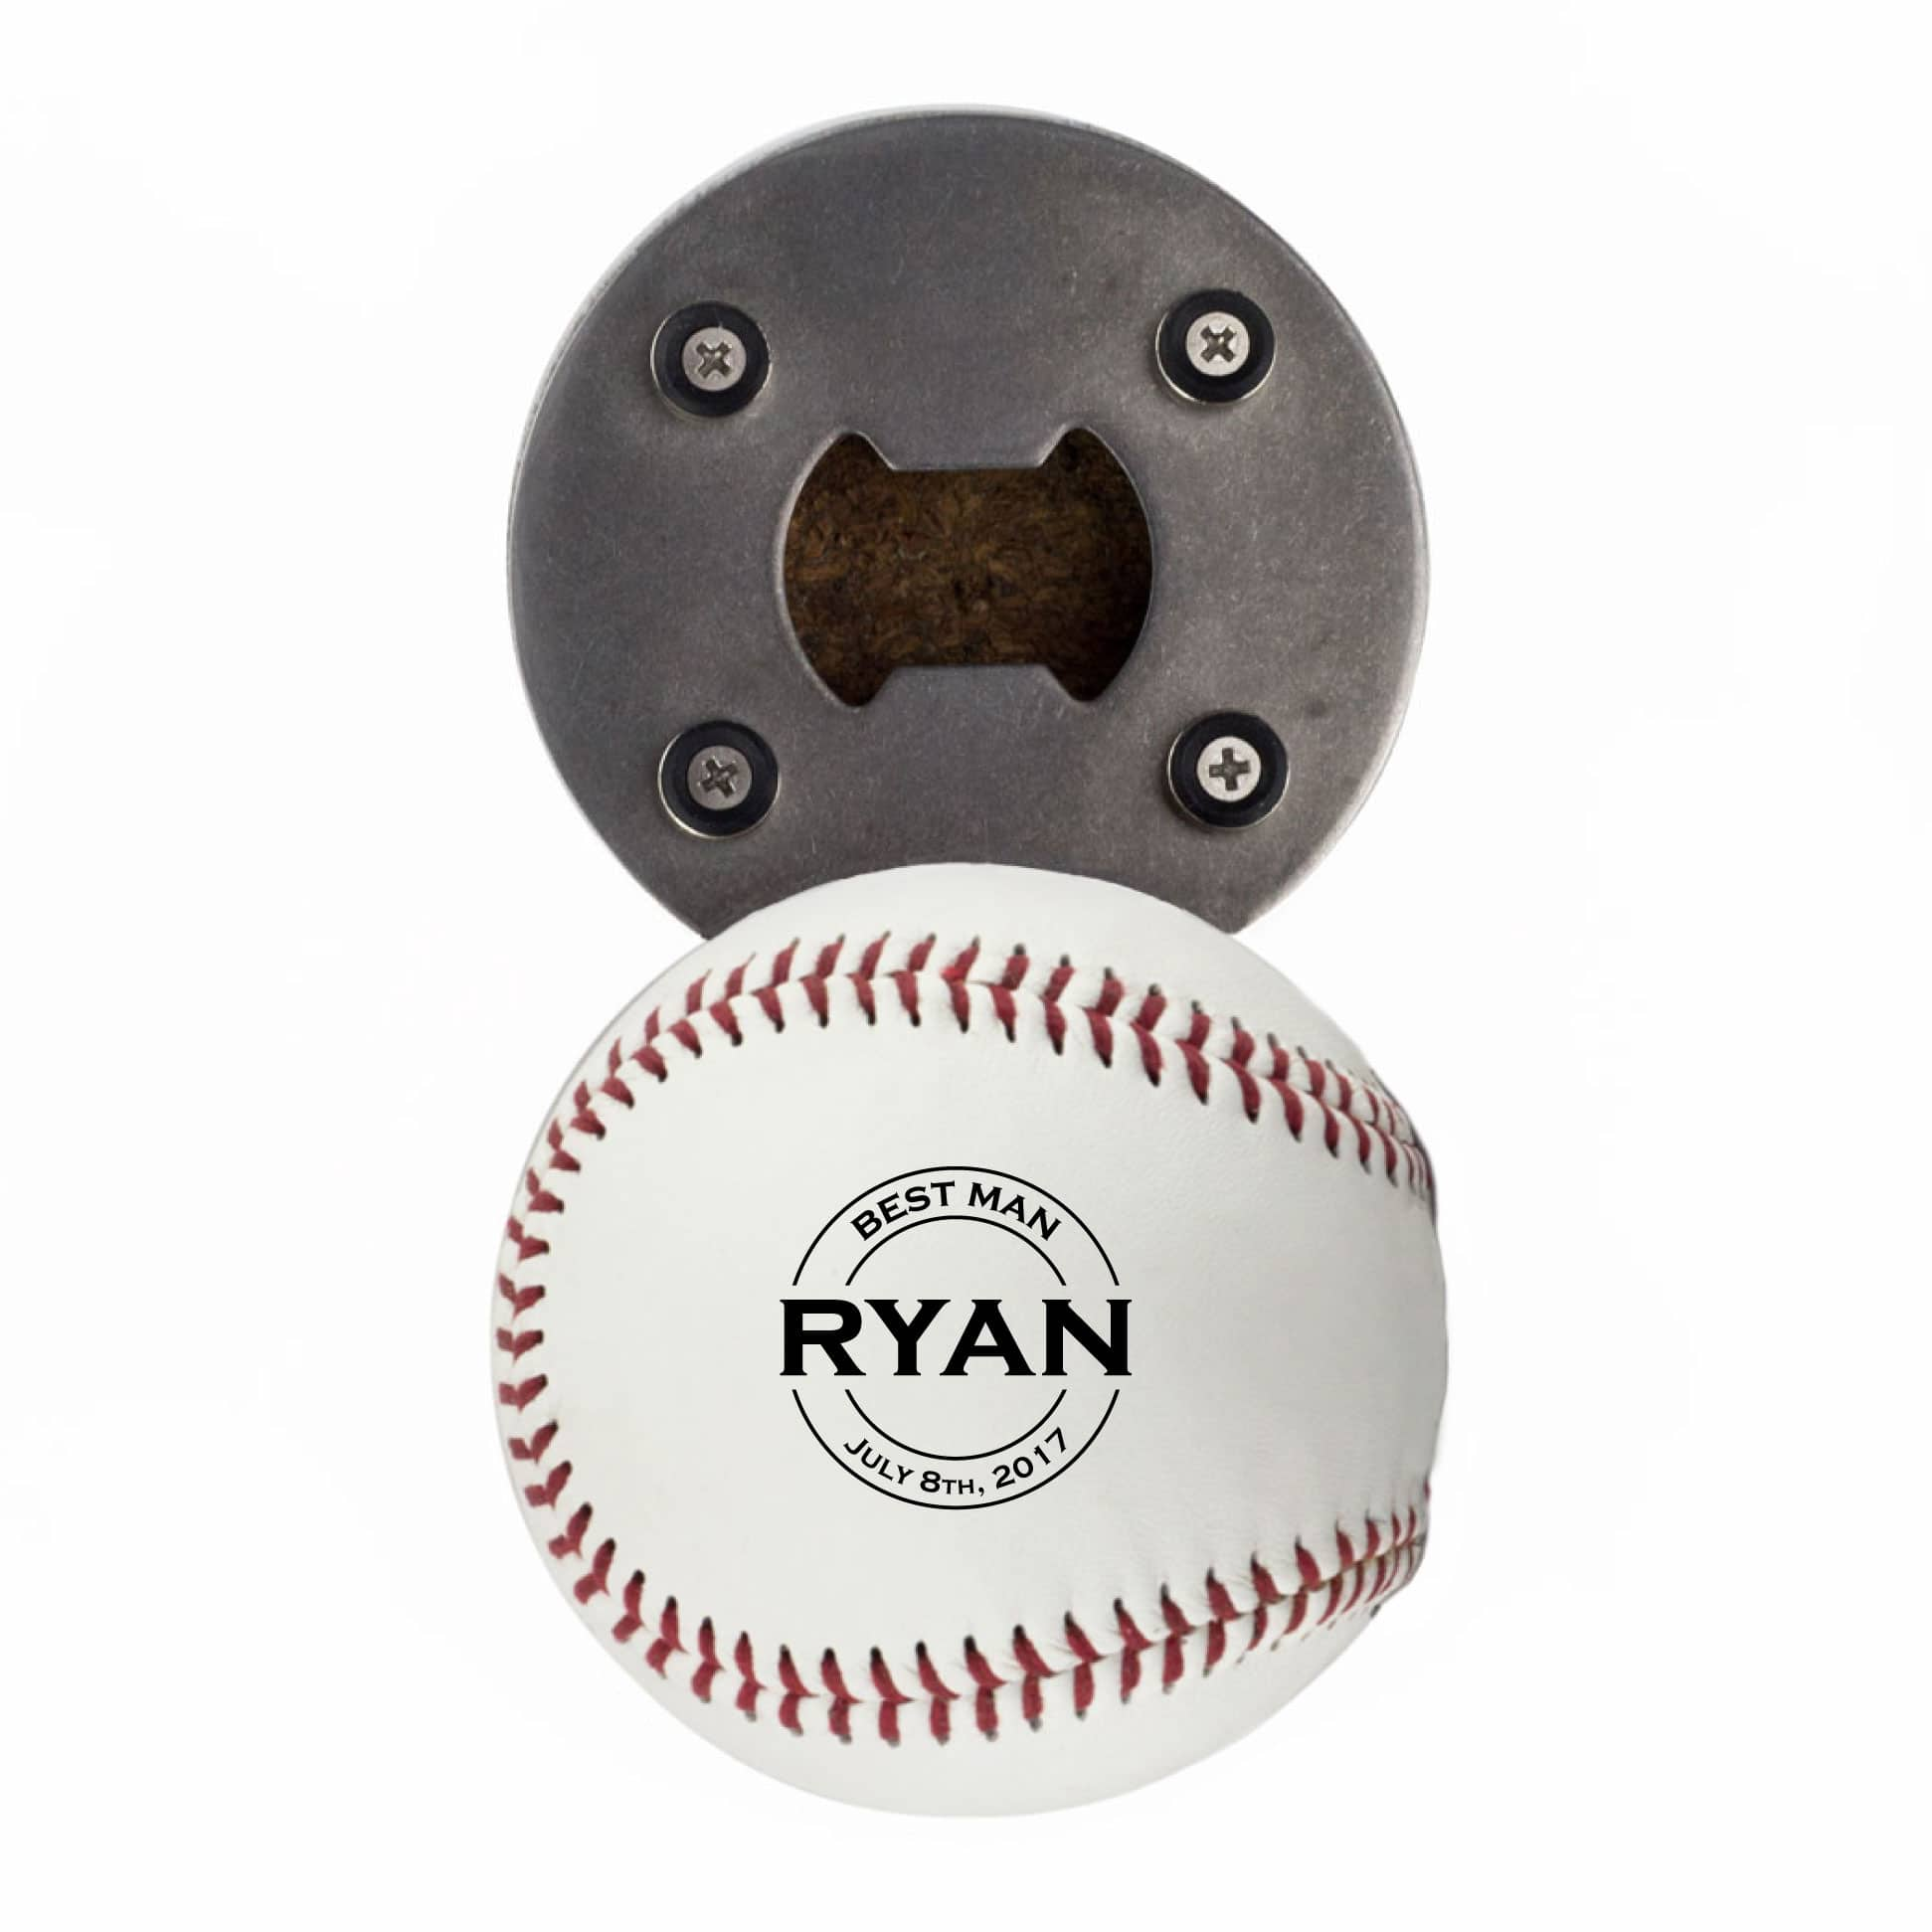 Personalized Baseball Bottle Opener